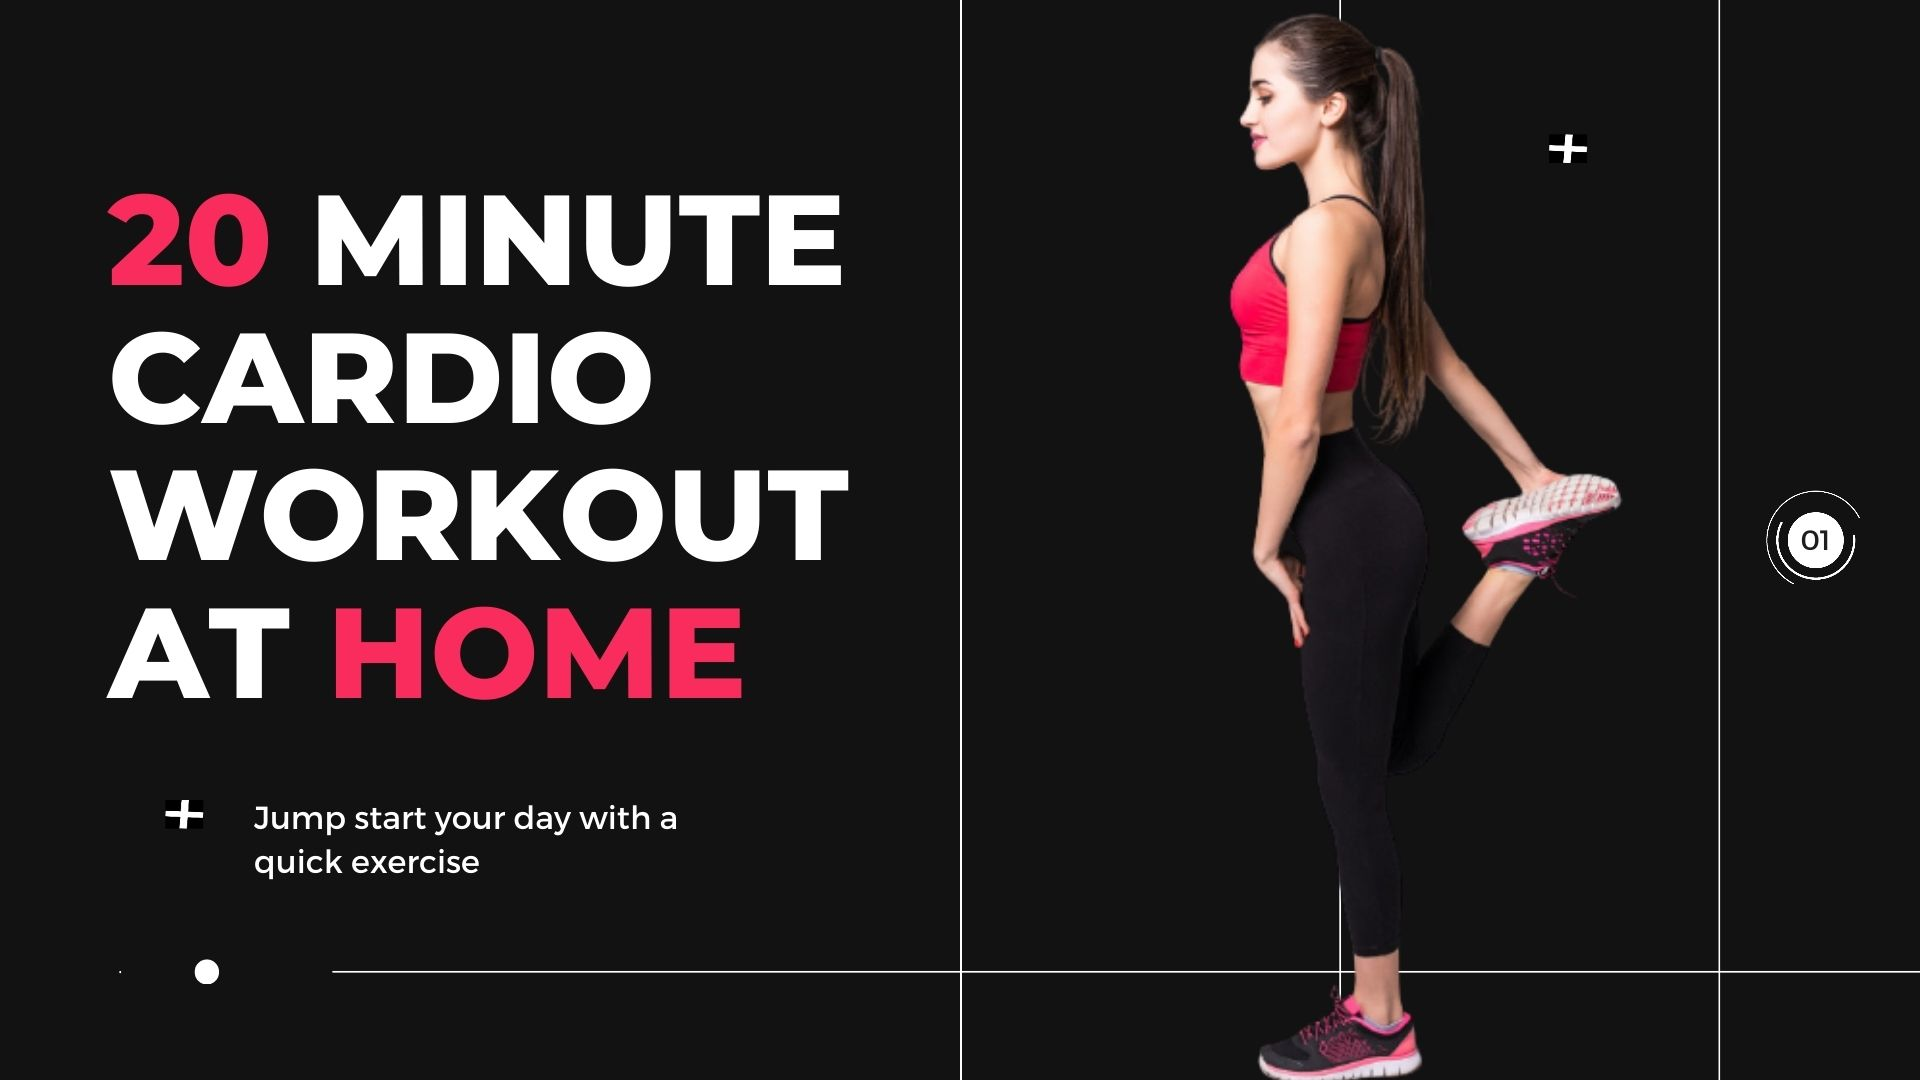 20 Minute Good Cardio Workouts At Home For Women